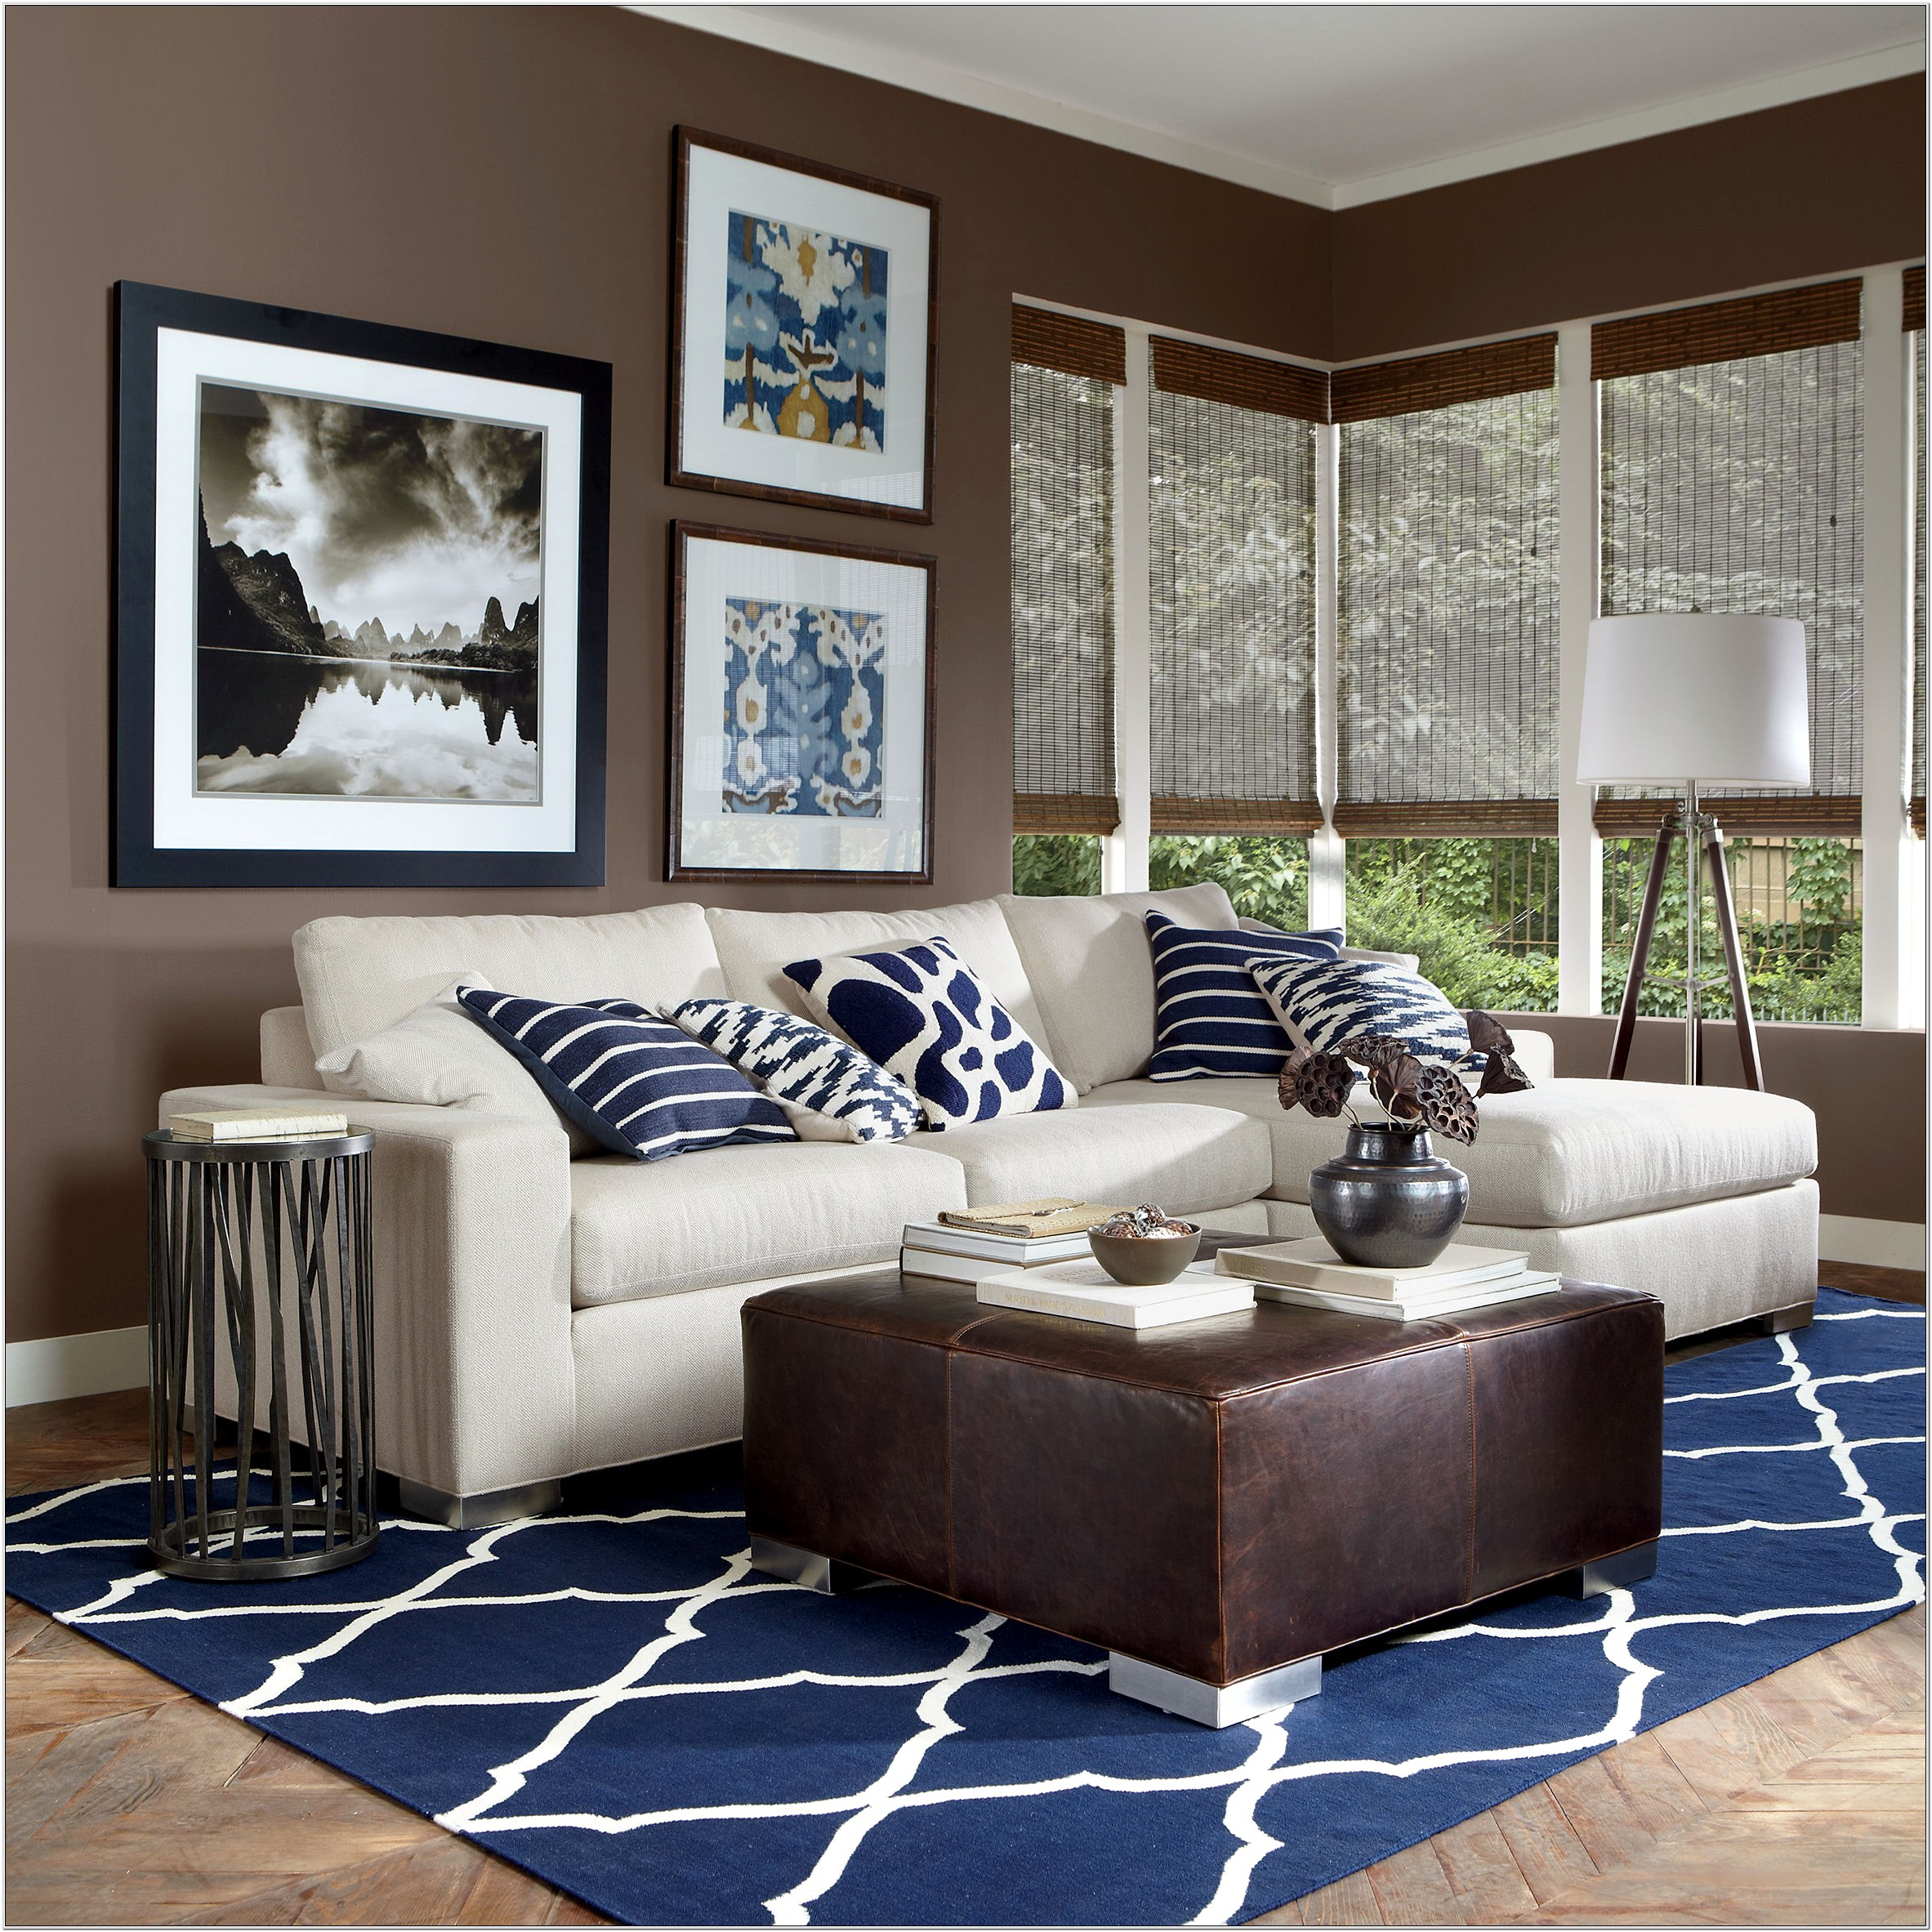 Living Room Design Brown And Blue